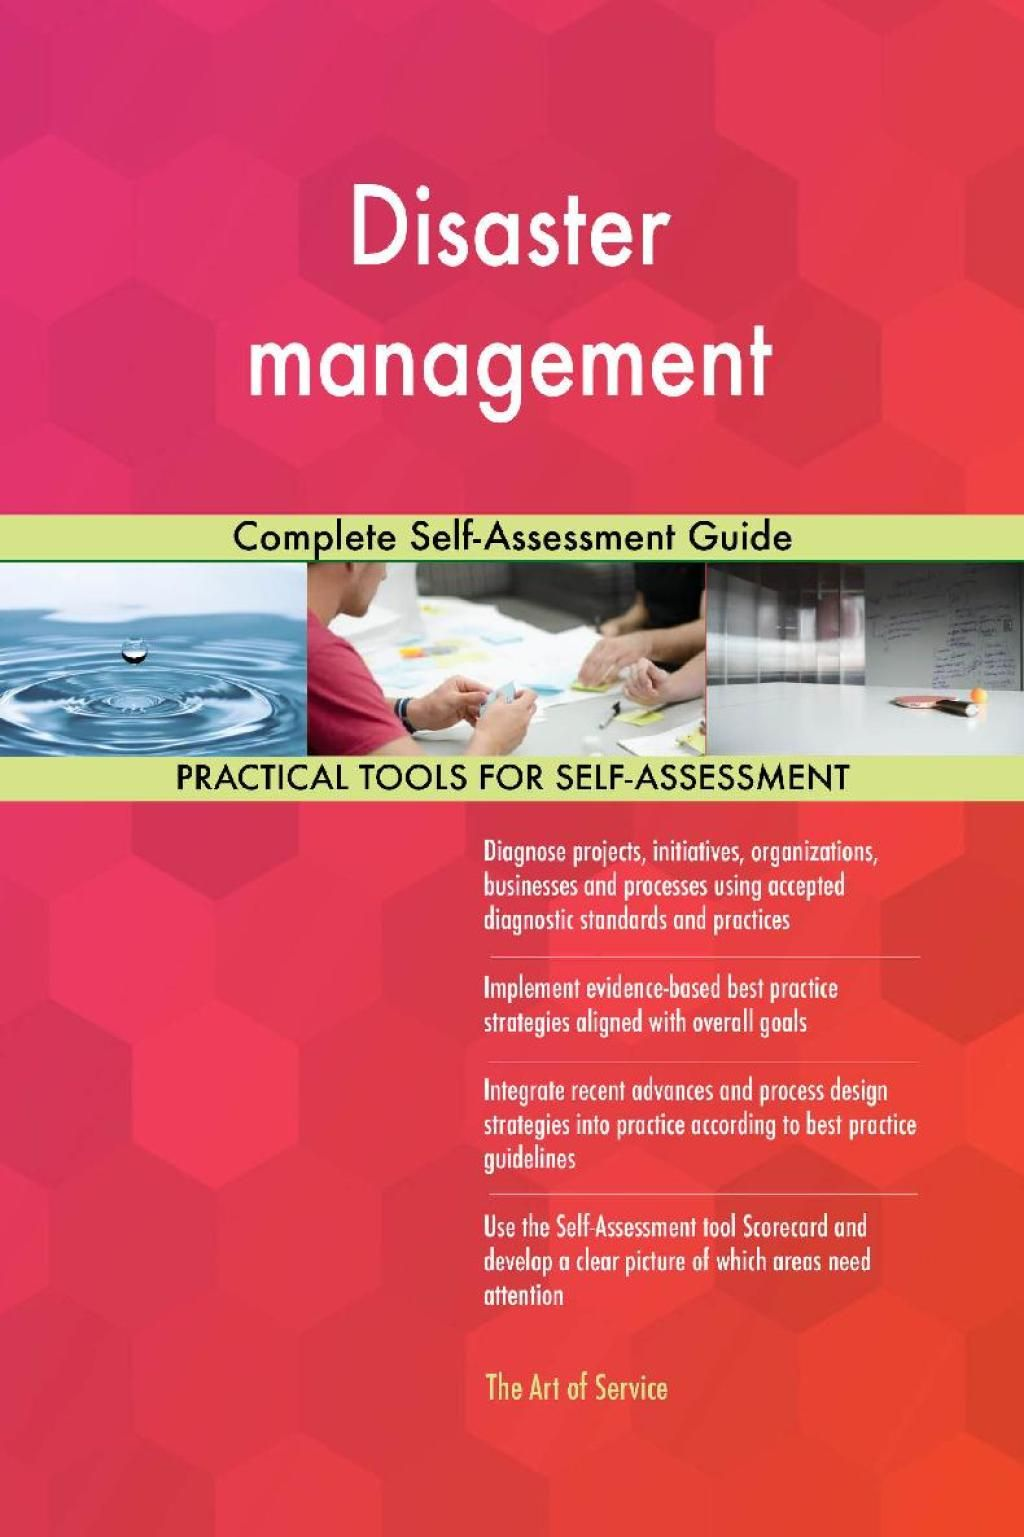 Pin By Beth Lowrey On Work Stuff Self Assessment Assessment